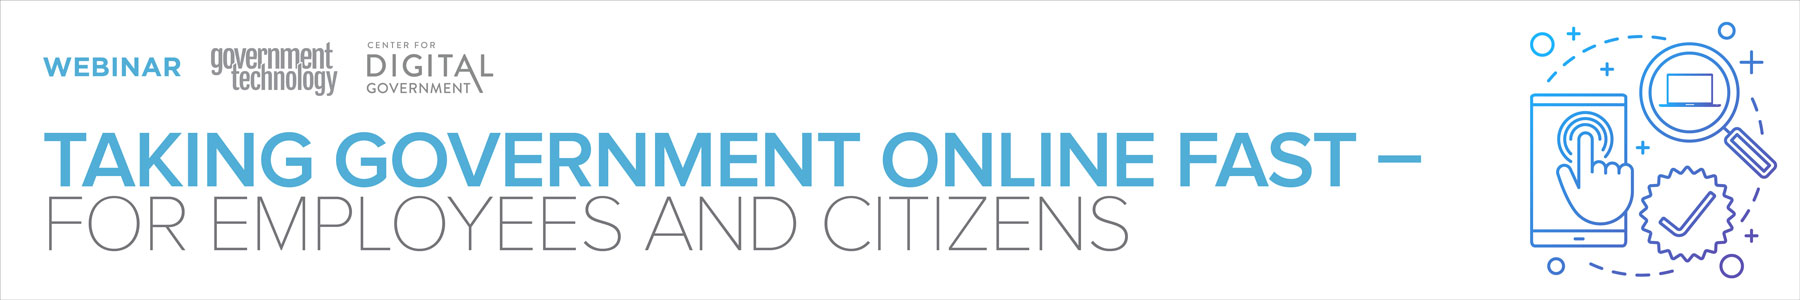 Taking Government Online Fast - For Employees and Citizens